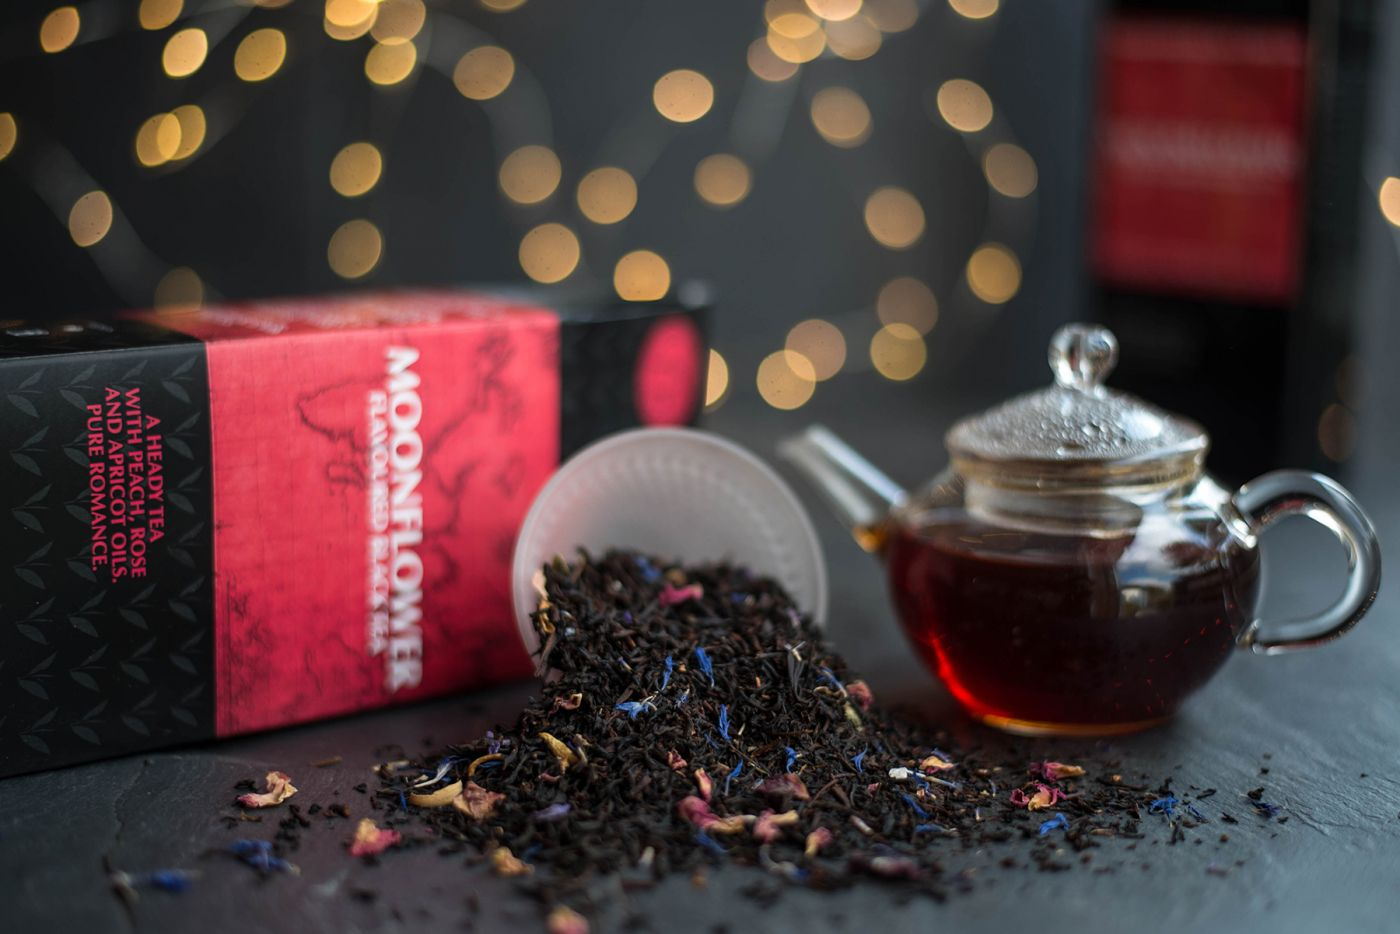 Moonflower Flavoured Black Tea